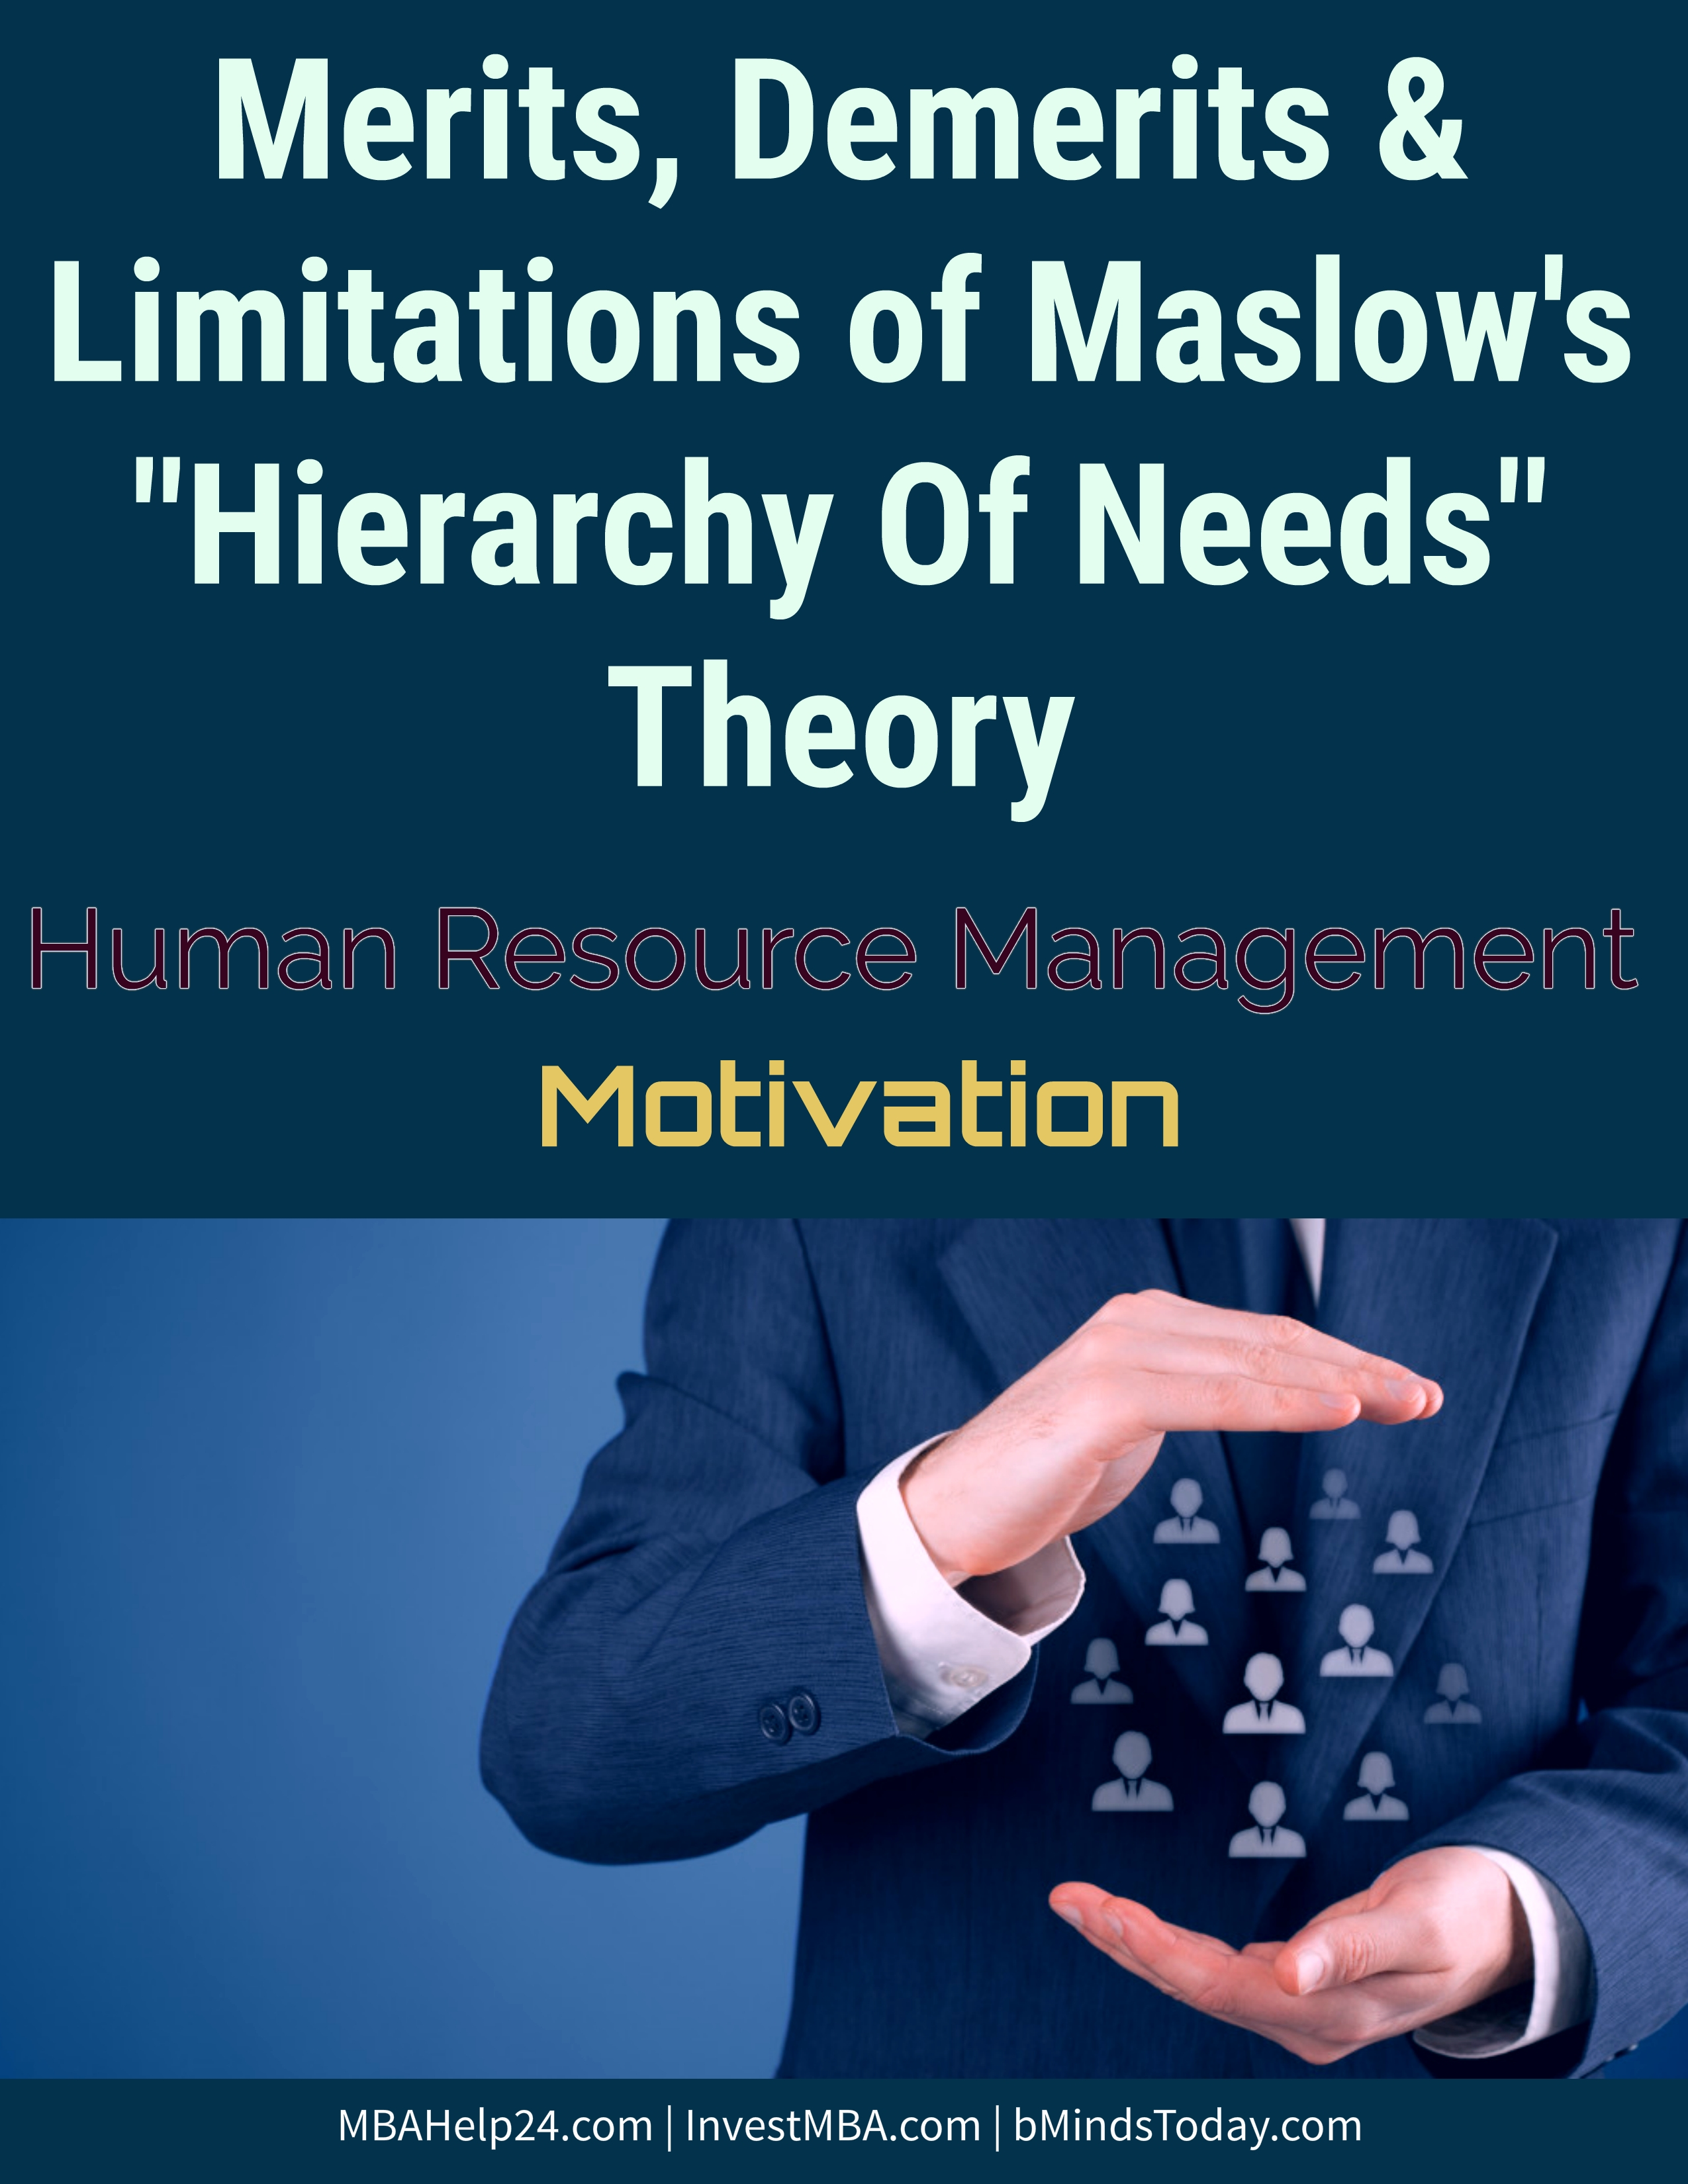 Advantages, Disadvantages and Limitations of Maslow's Hierarchy of Need Theory hierarchy of needs Limitations Of Maslow's 'Hierarchy of Needs' Theory | Merits | Demerits advantages disadvatages and limitations of maslow hierarchy of needs theory